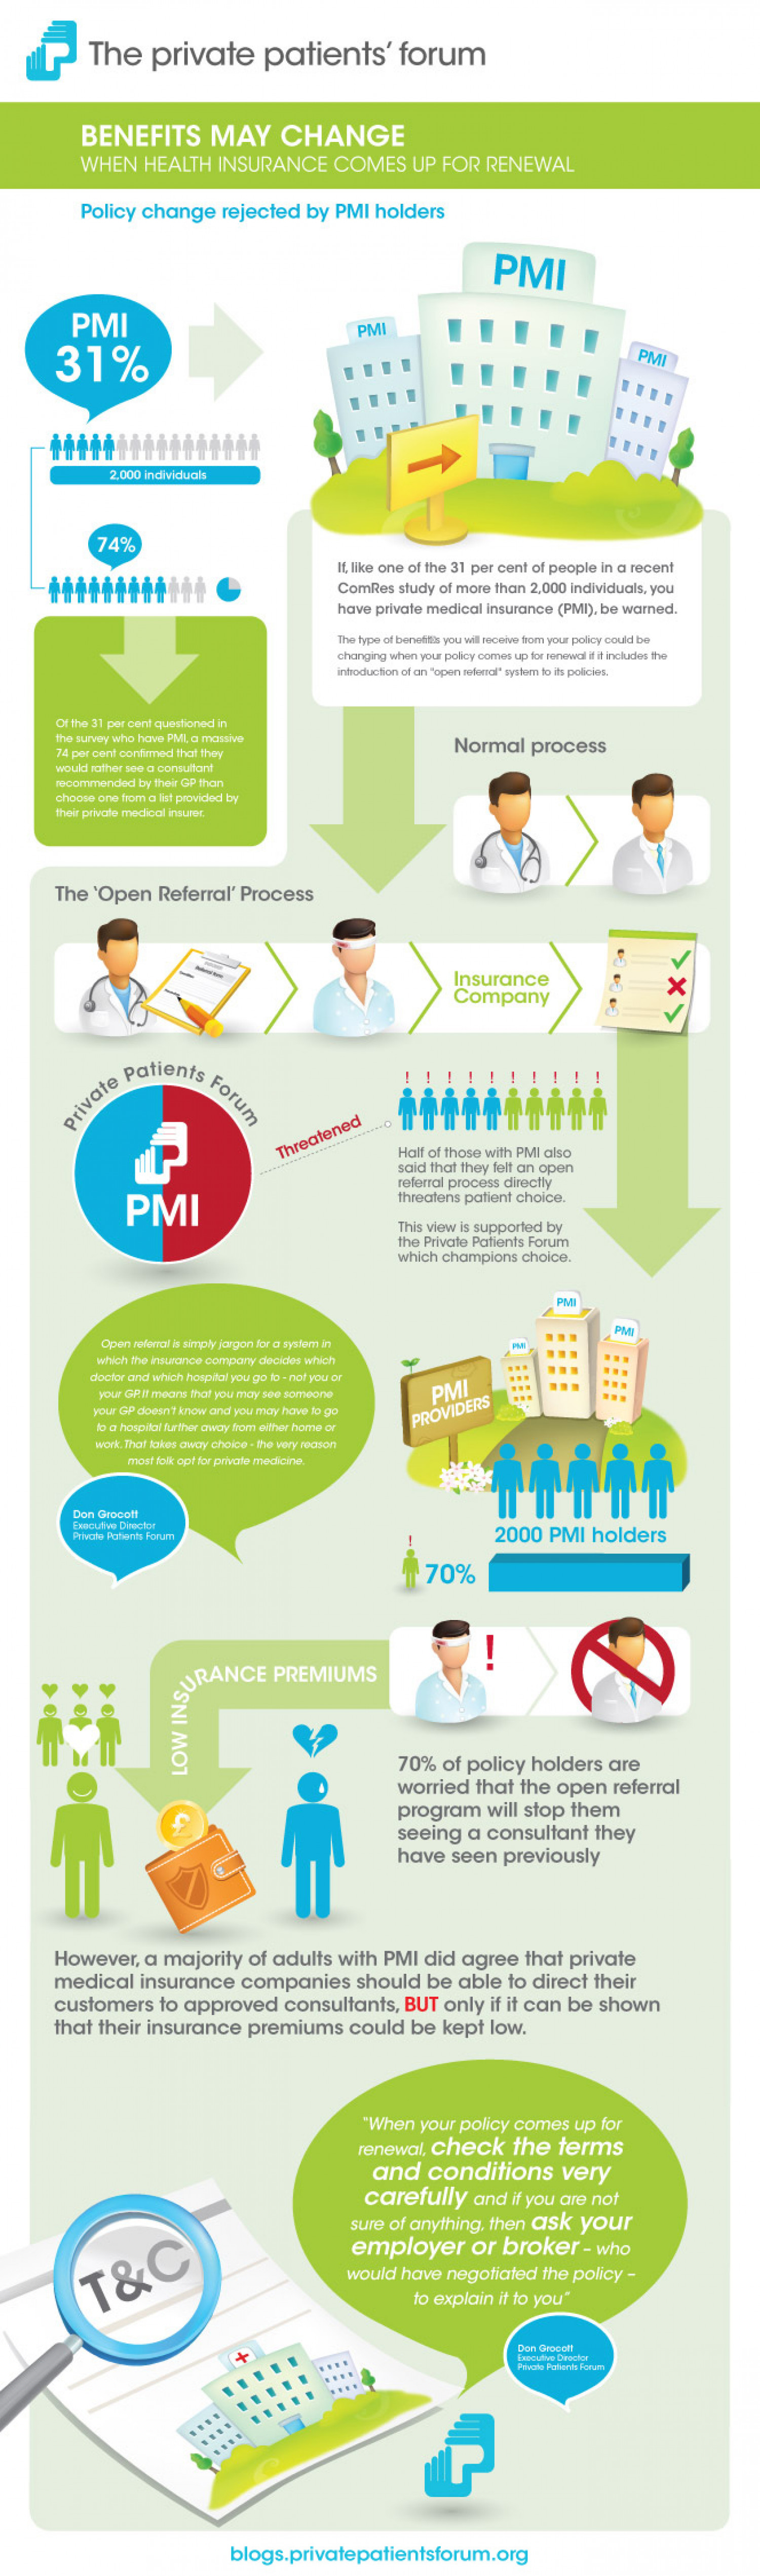 Benefits may change when health insurance comes up for renewal Infographic